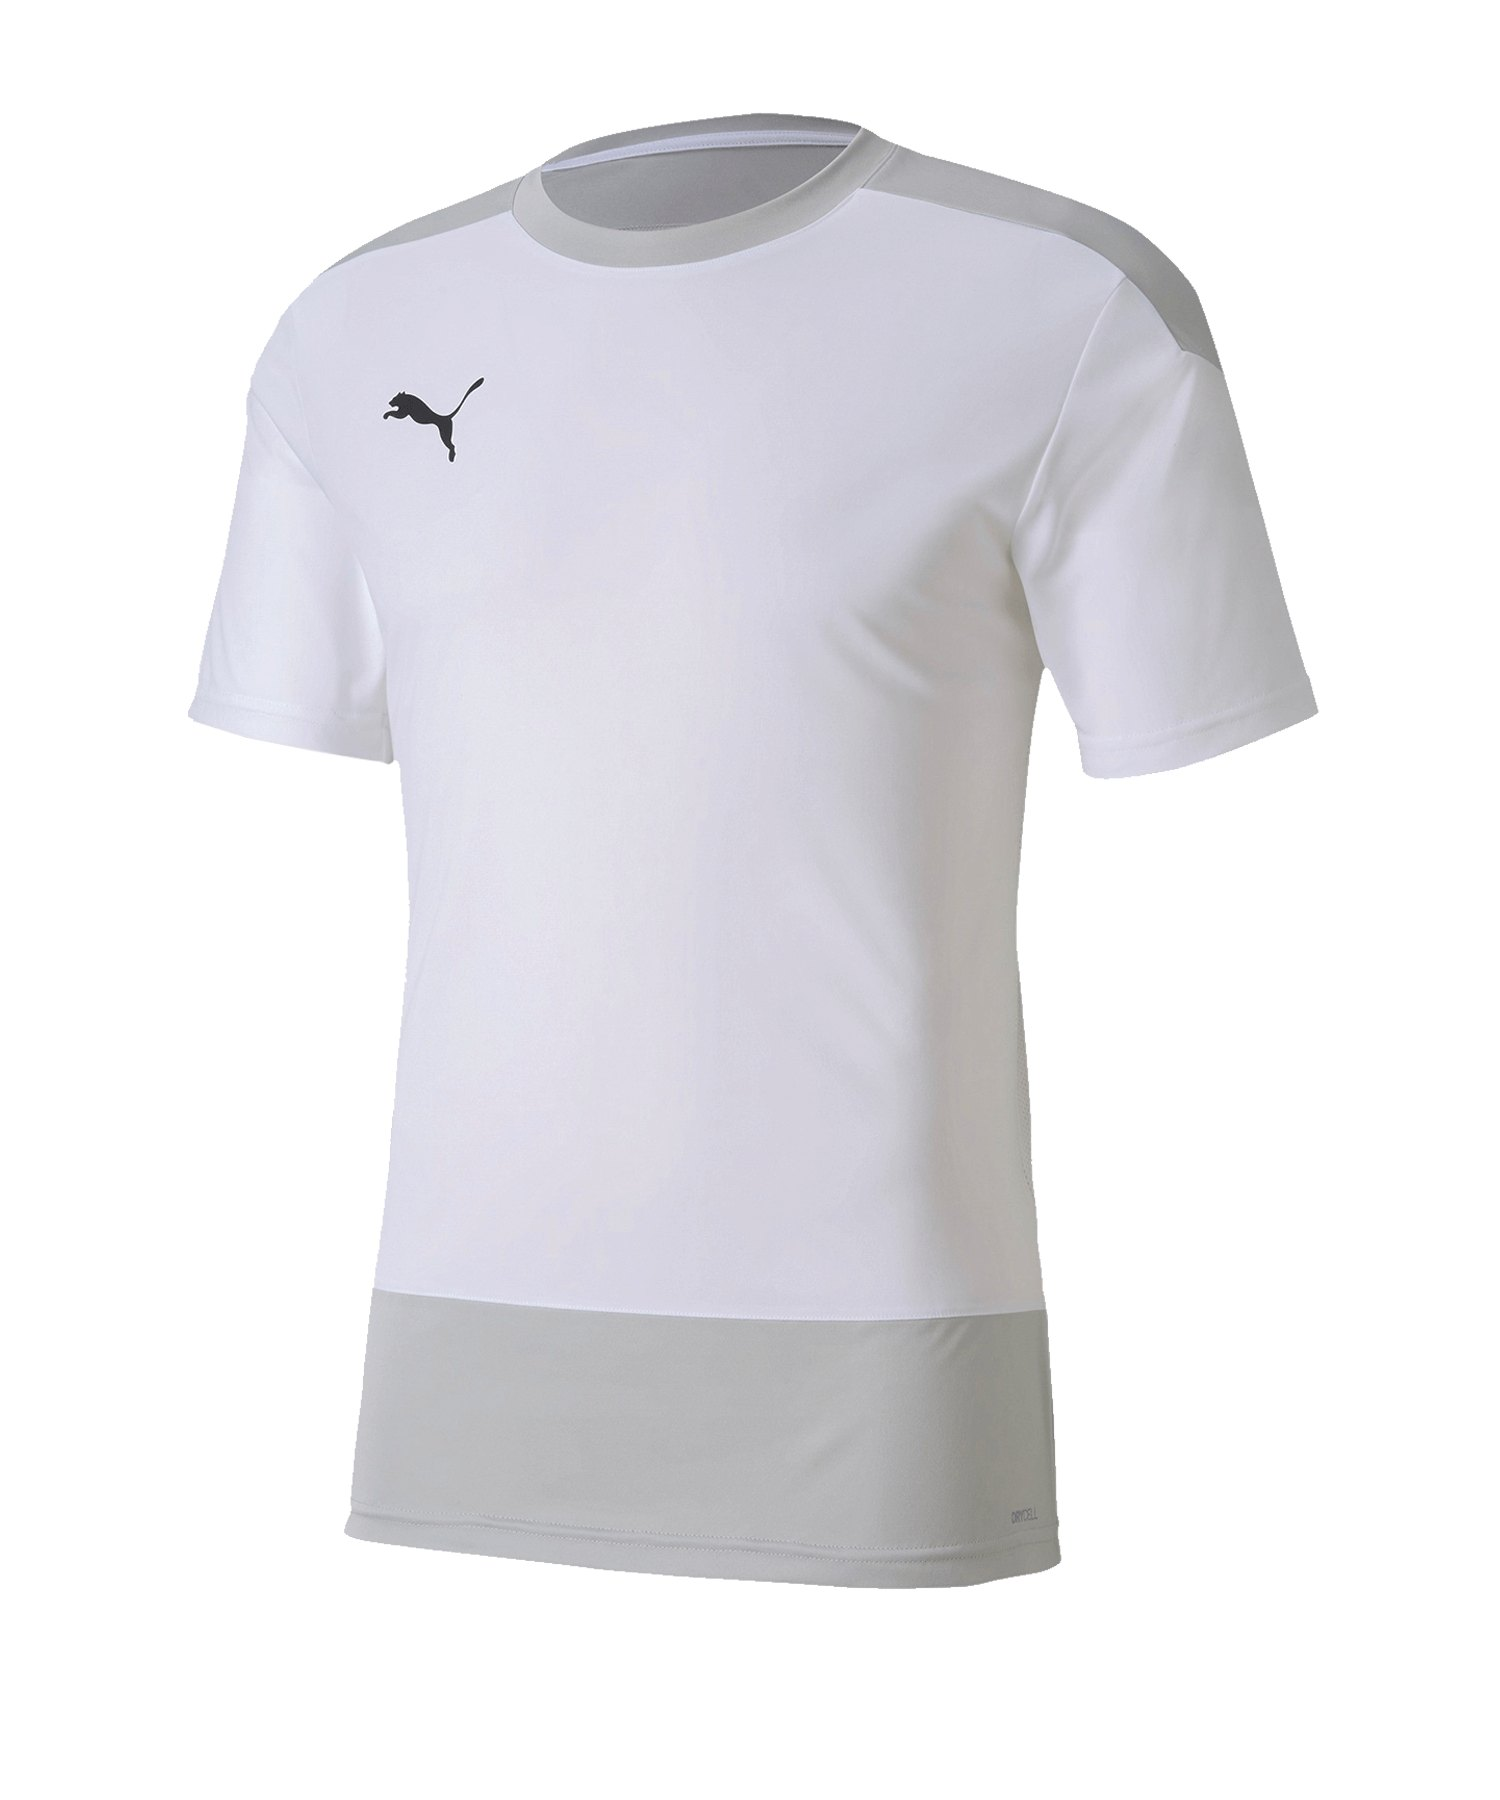 PUMA teamGOAL 23 Training Trikot Kids Weiss F04 - weiss